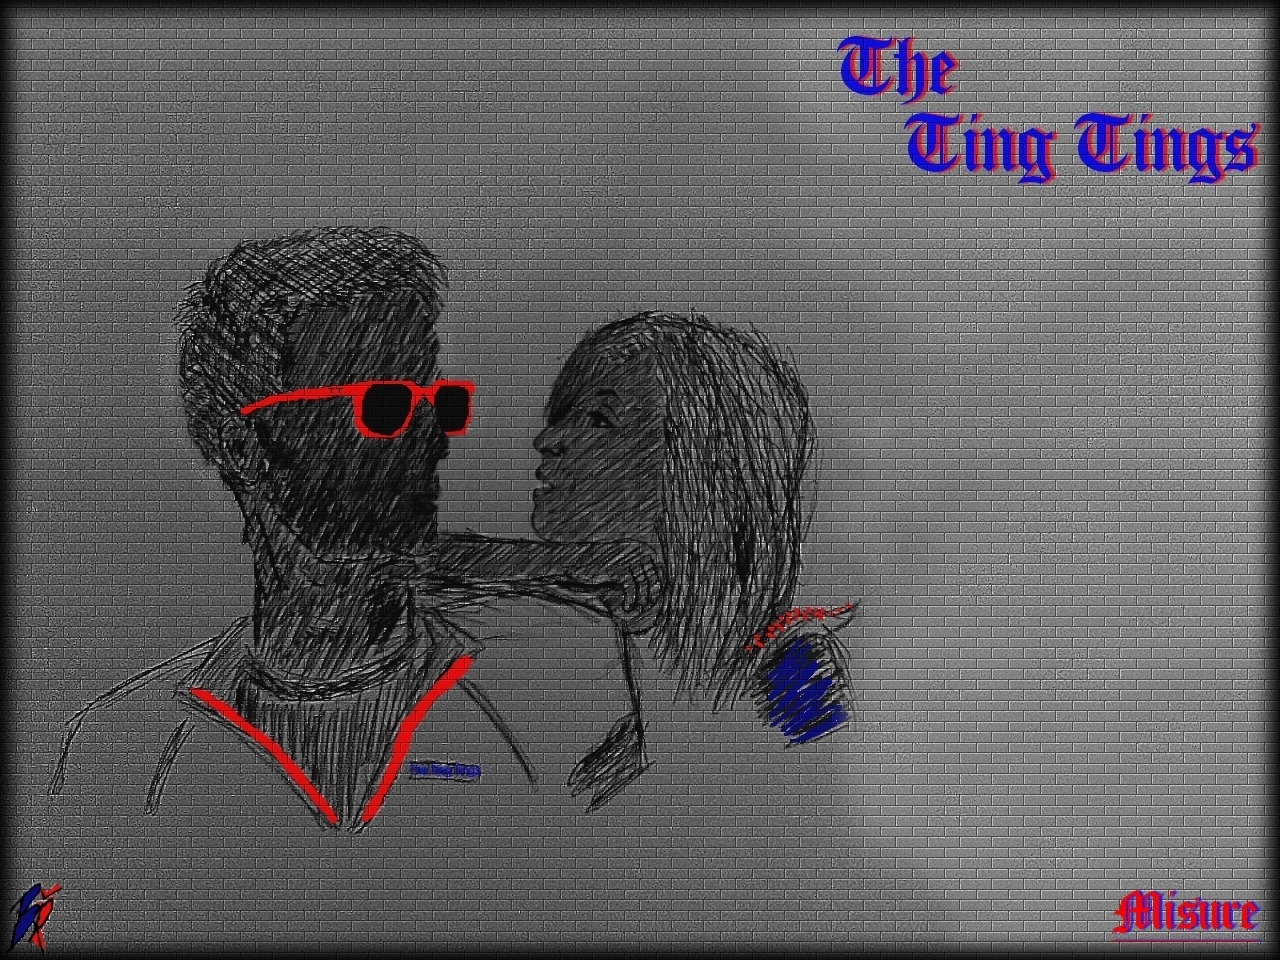 http://images2.fanpop.com/images/photos/6600000/The-Ting-Ting-the-ting-tings-6696636-1280-960.jpg